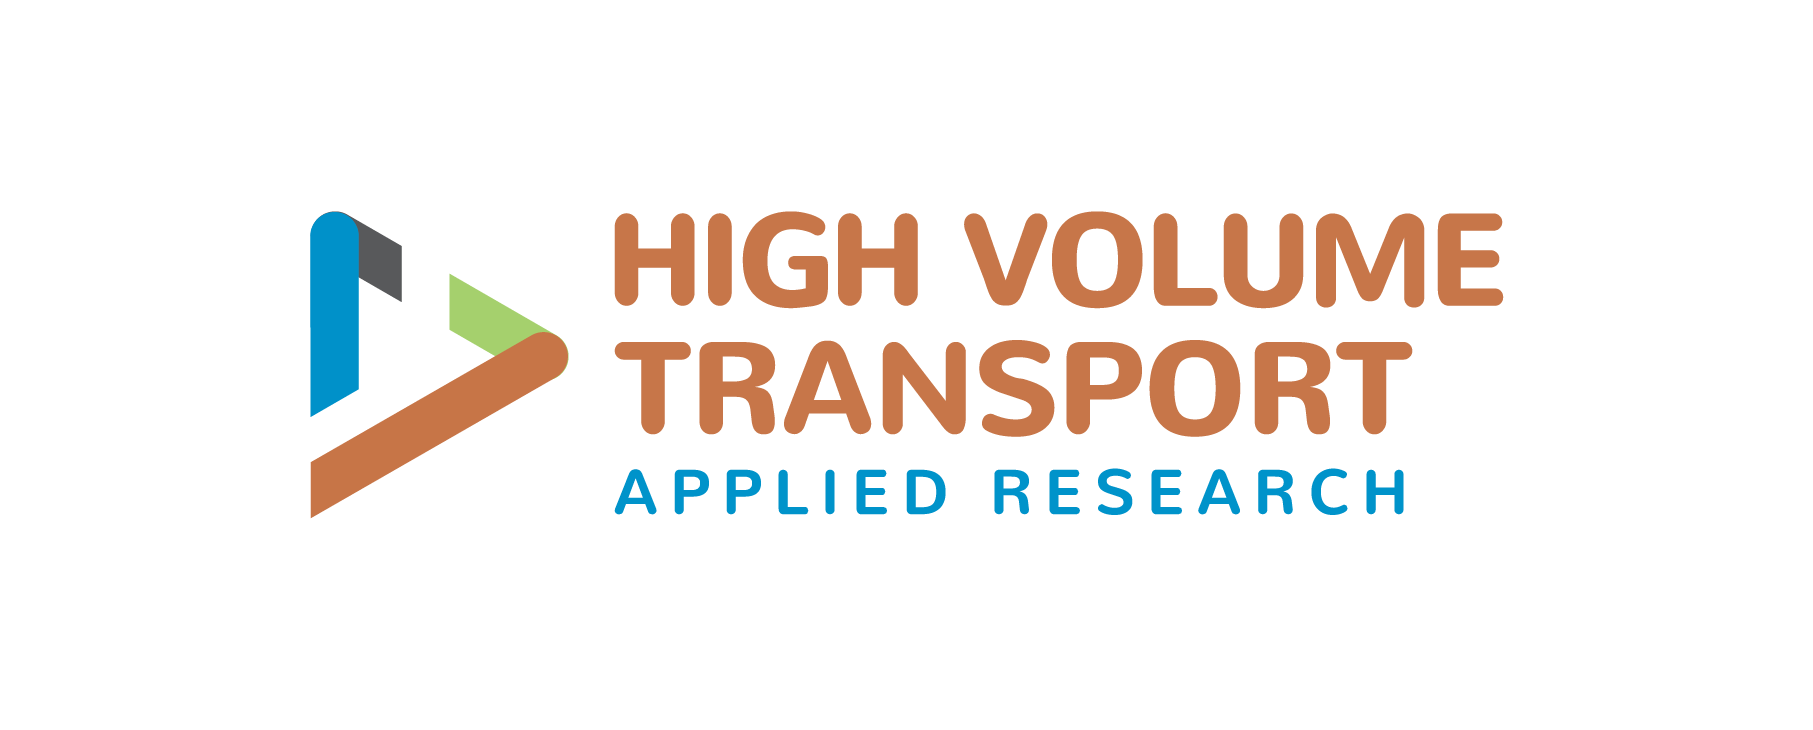 Applied Research Programme for High Volume Transport: State of Knowledge Study of Long Distance Road and Rail Transport